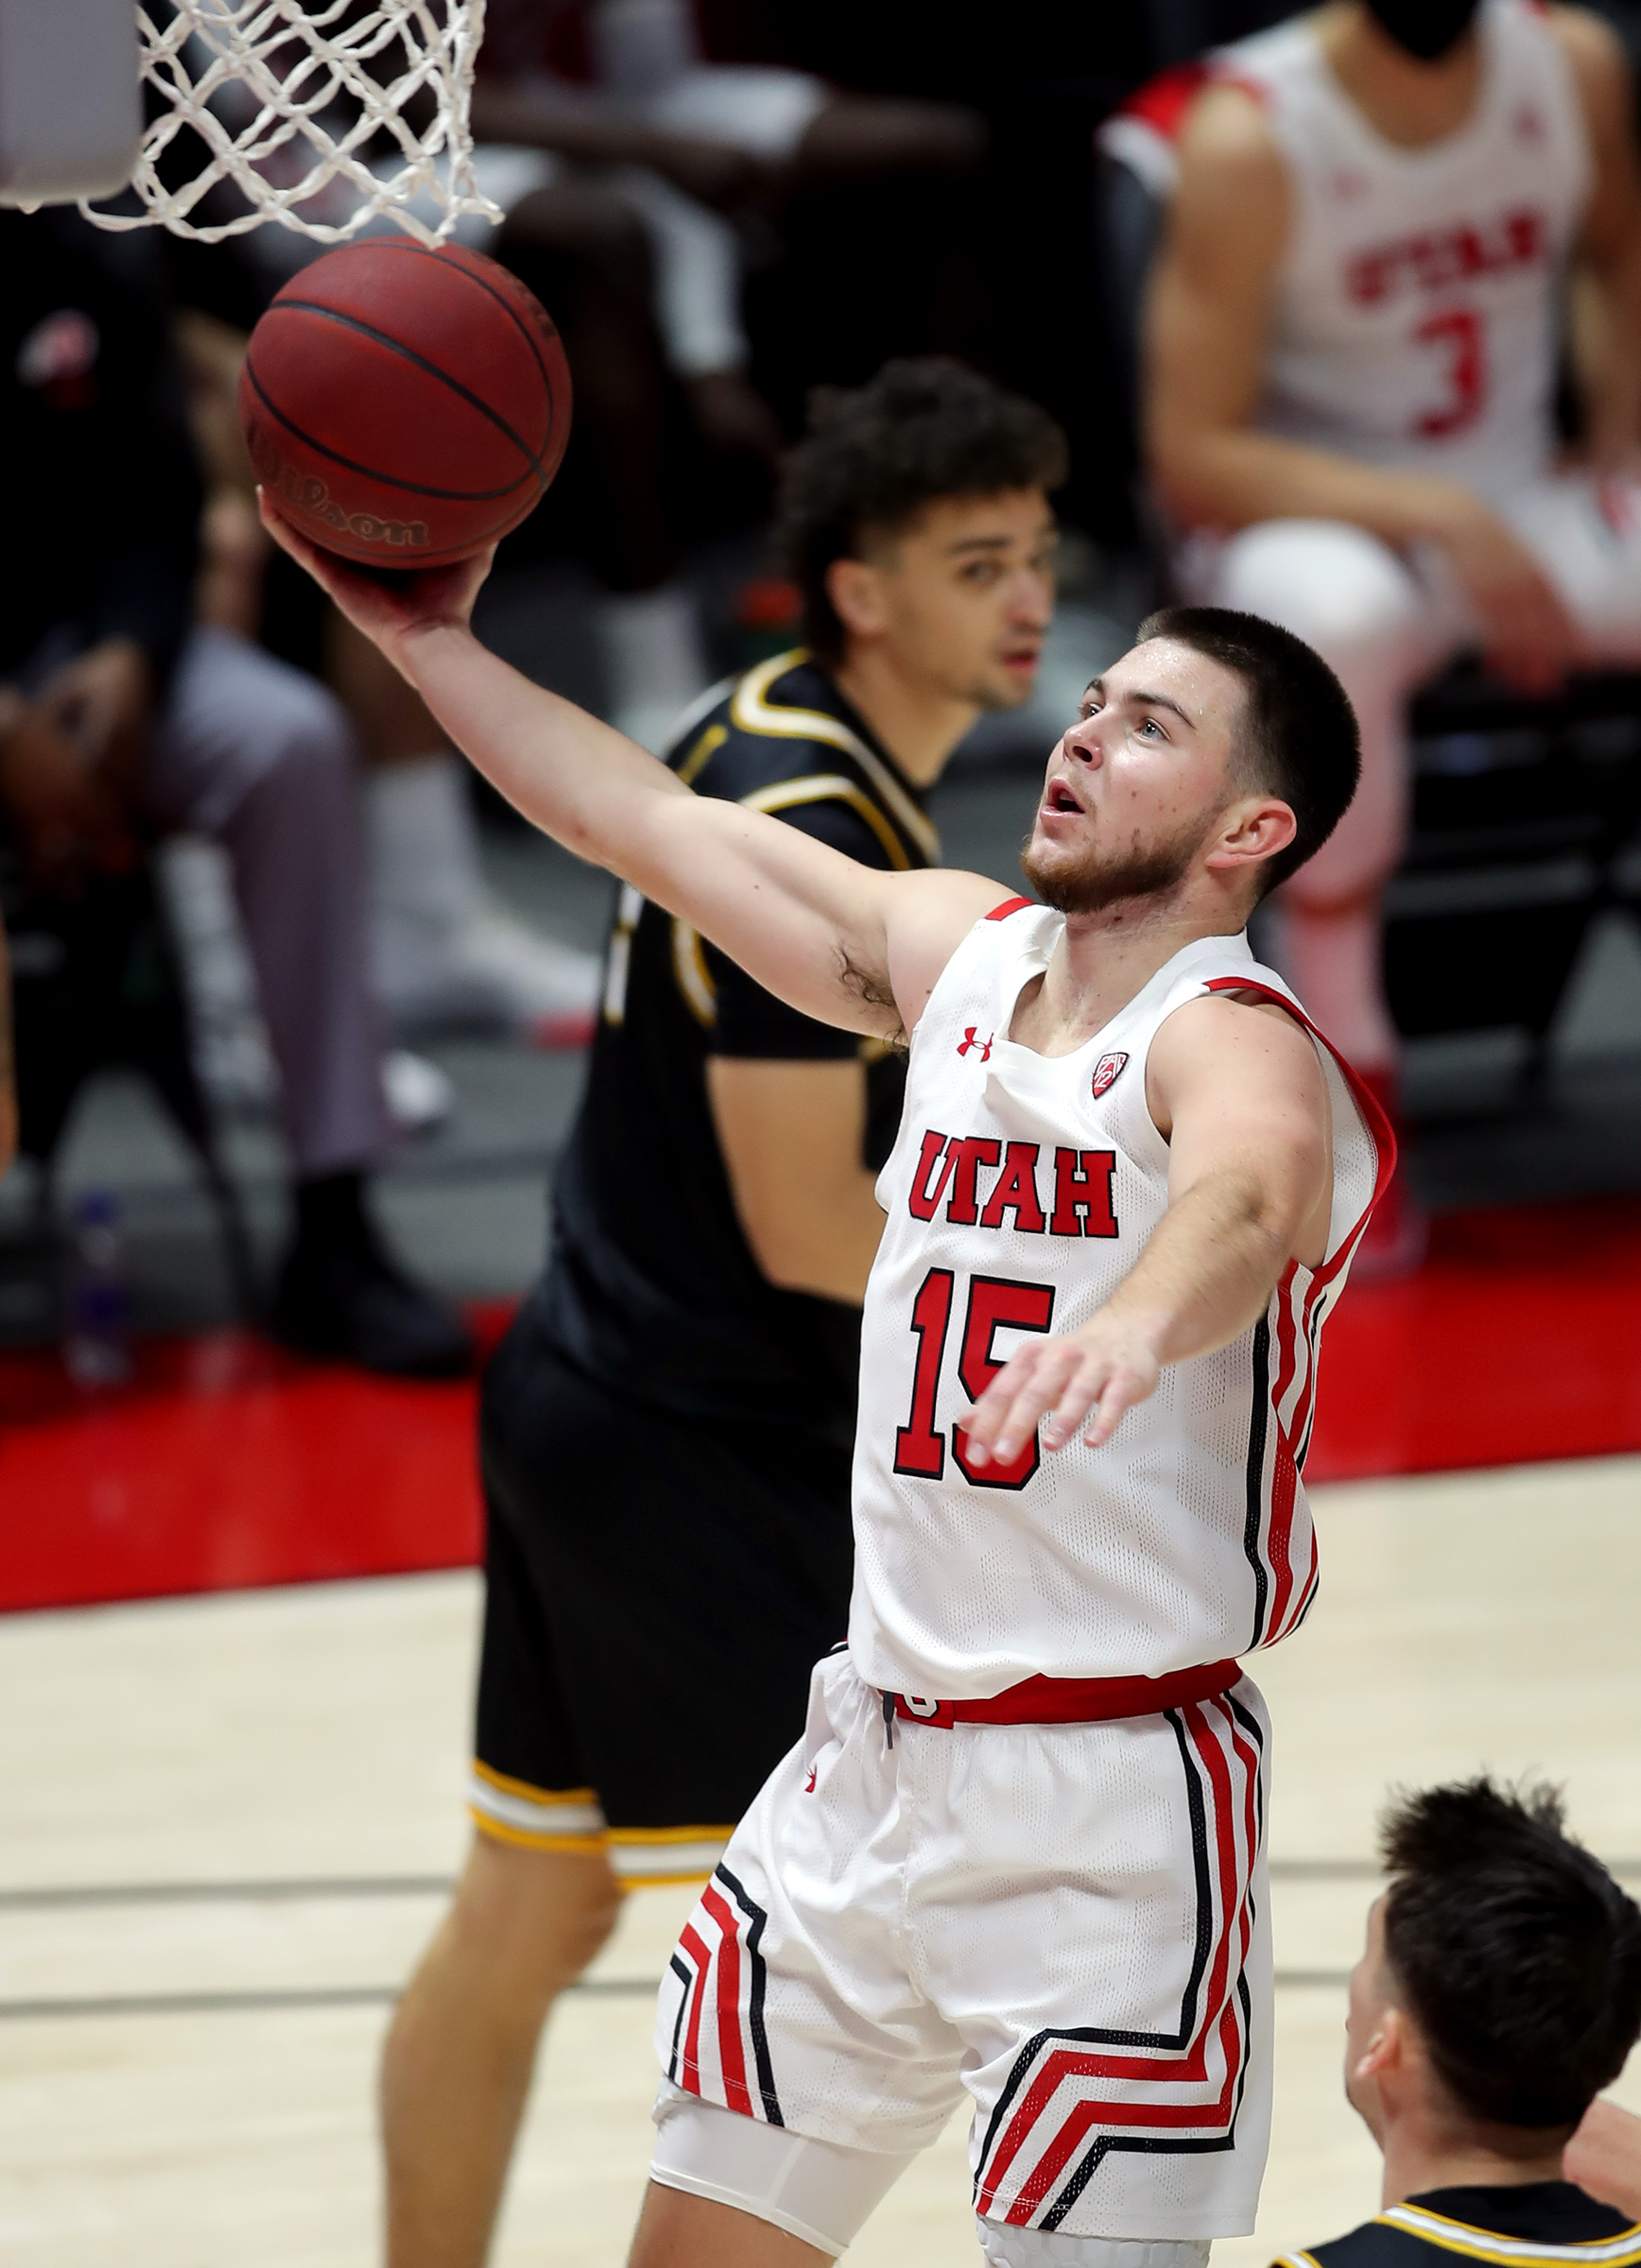 Utah Utes guard Rylan Jones (15) goes up for a layup as the University of Utah and the University of Idaho play a basketball game at the Huntsman Center in Salt Lake City on Friday, Dec. 18, 2020.